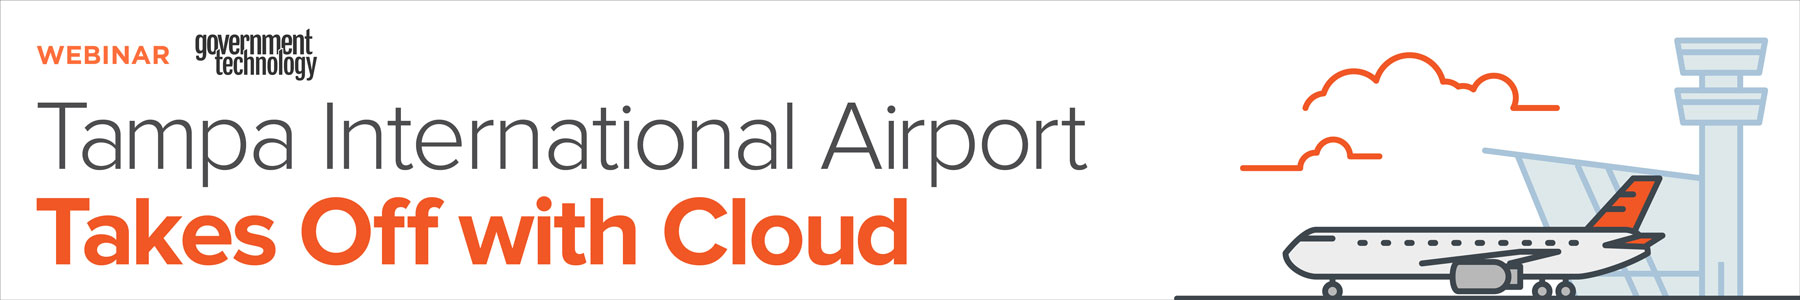 Tampa International Airport Takes Off with Cloud